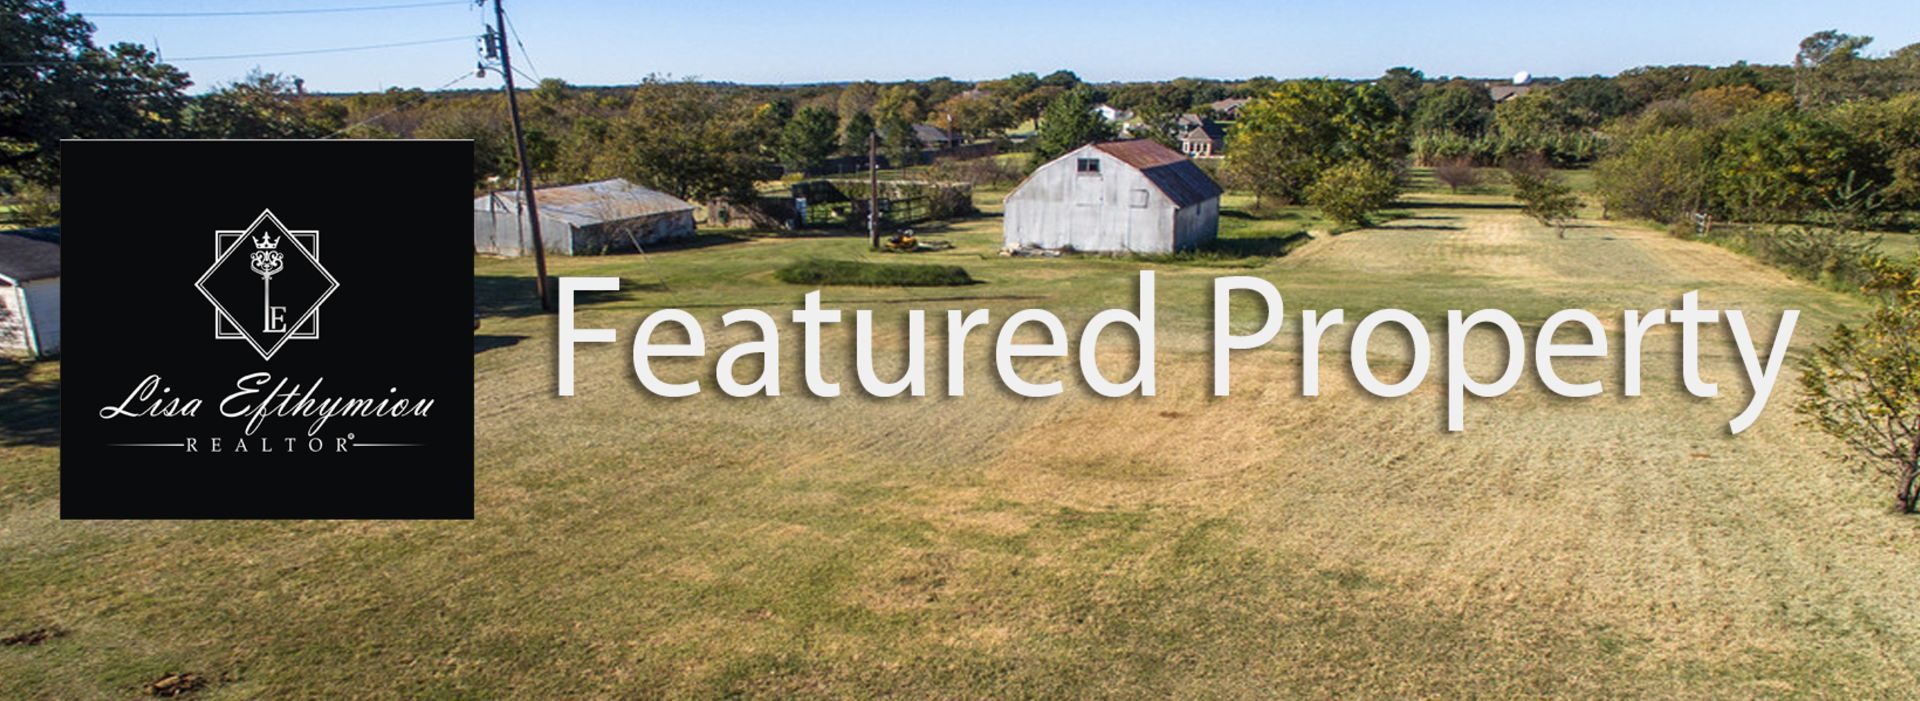 FEATURED PROPERTY: 664 N. Pearson Ln, Keller, TX 76262